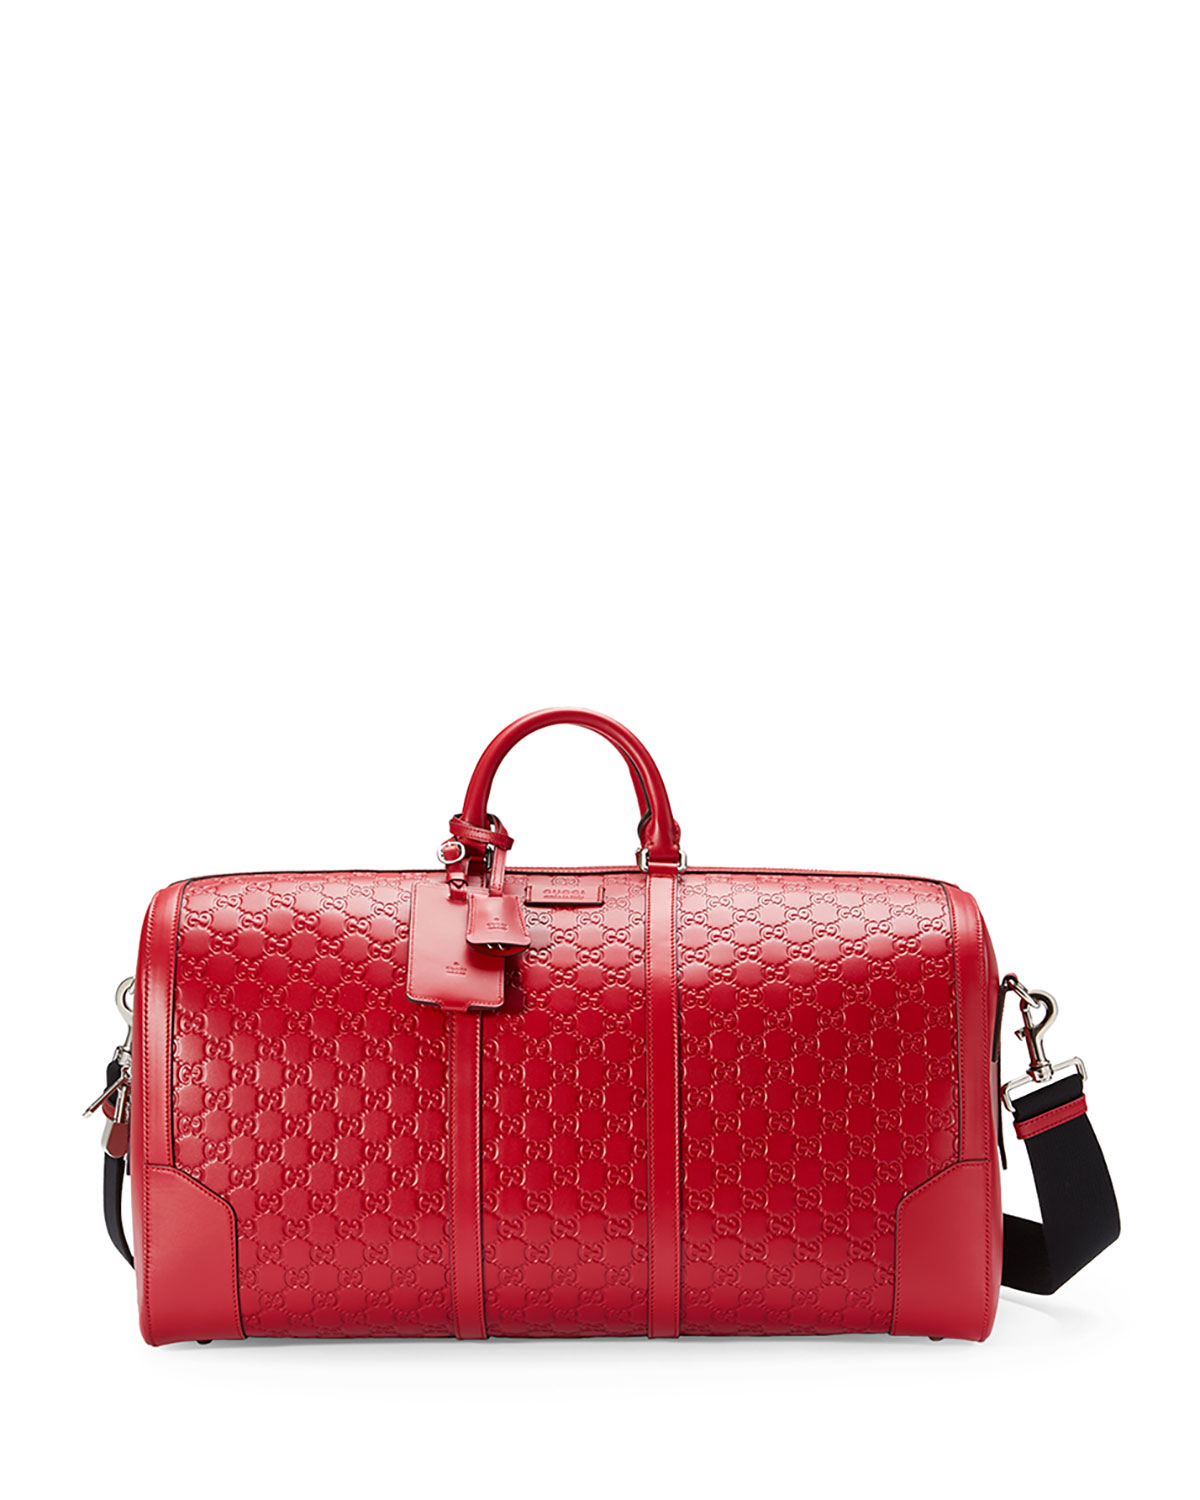 7cfca075dfc Gucci Signature Large Leather Duffel Bag